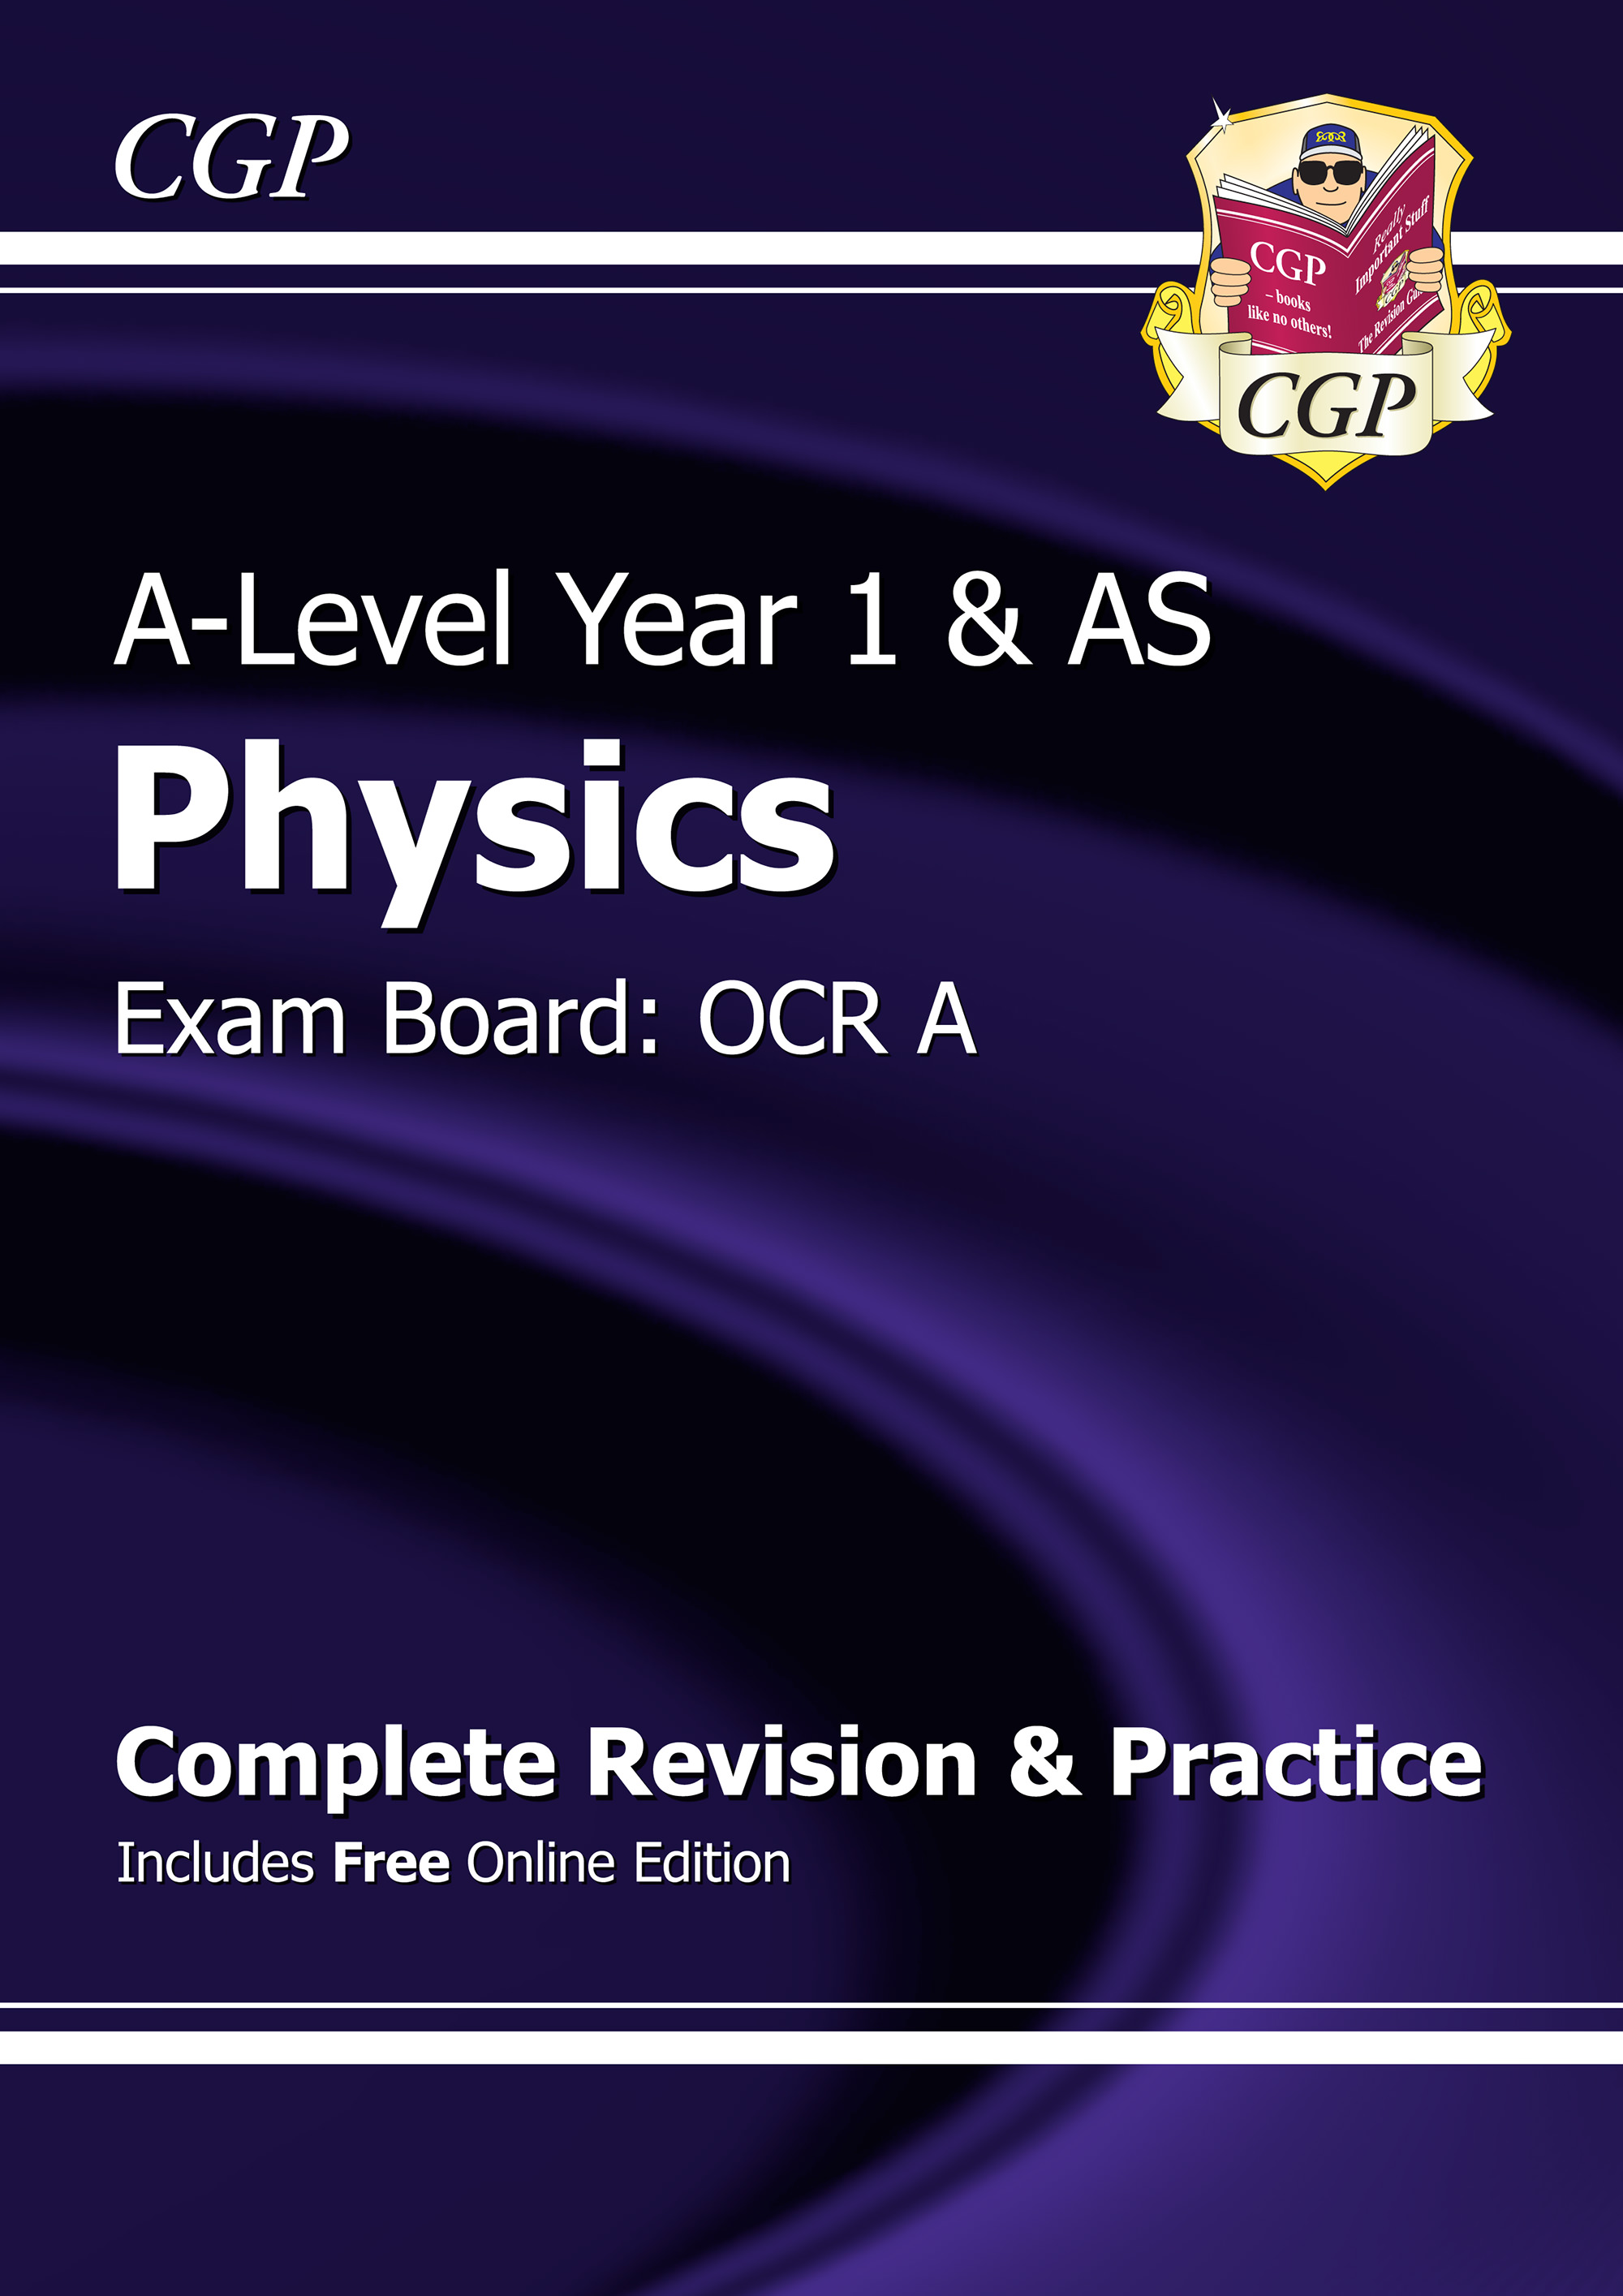 PRAR53 - A-Level Physics: OCR A Year 1 & AS Complete Revision & Practice with Online Edition